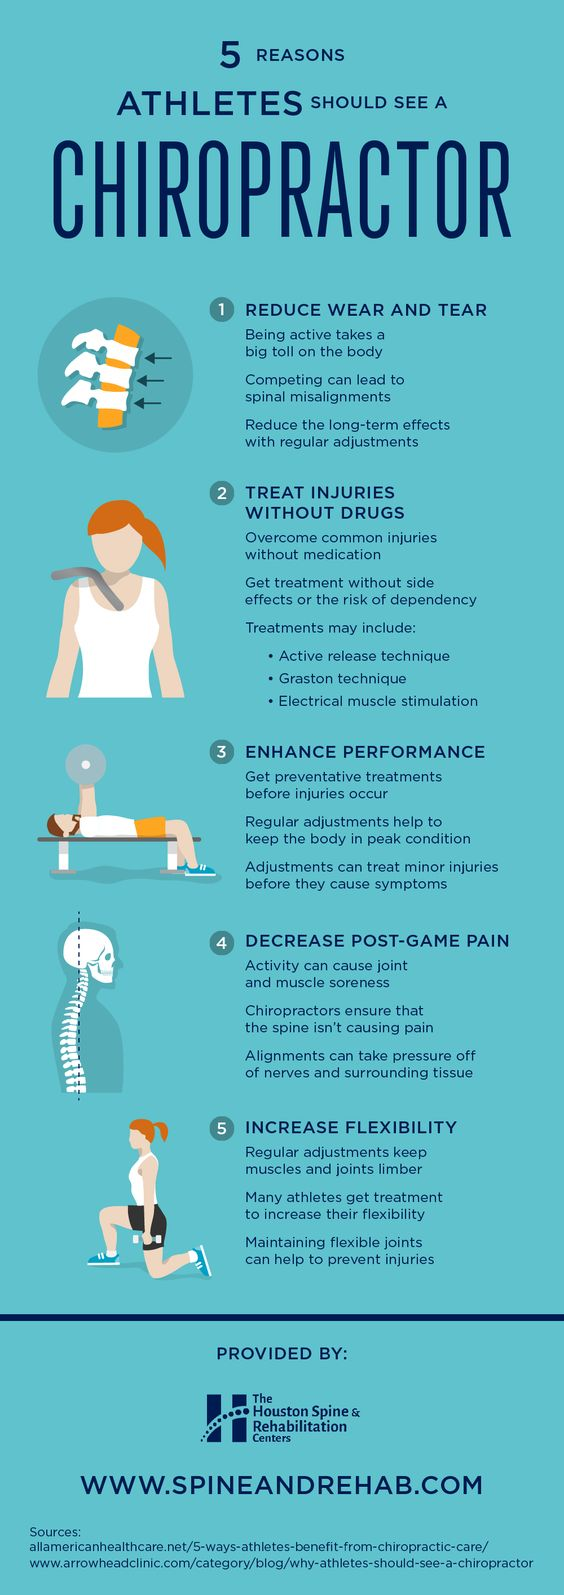 reasons athletes should see a chiropractor